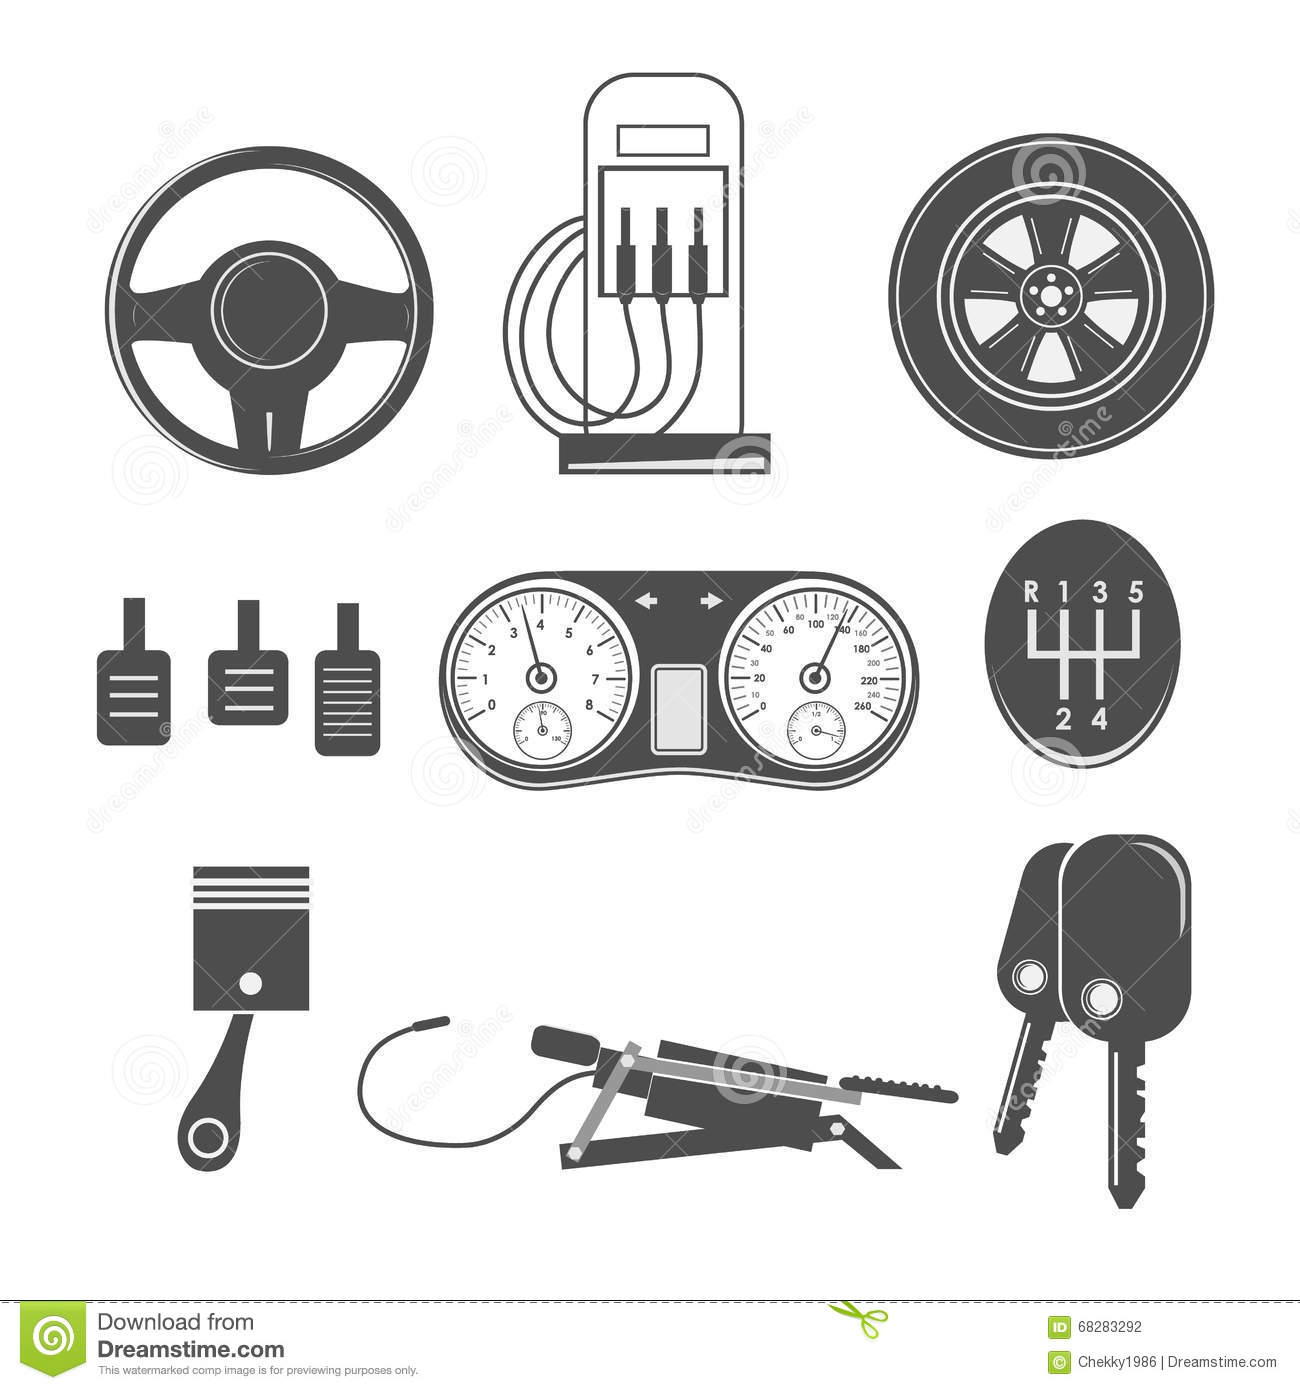 Tool Wrench Spanner Outlines 310292 together with Volkswagen Beetle Car Vw 157030 in addition Black And White Of Hot Rods Sketch Templates also Fiat Car Old Vintage Oldtimer 1296838 further Hot Wheels Hot Rod. on vintage automotive illustrations